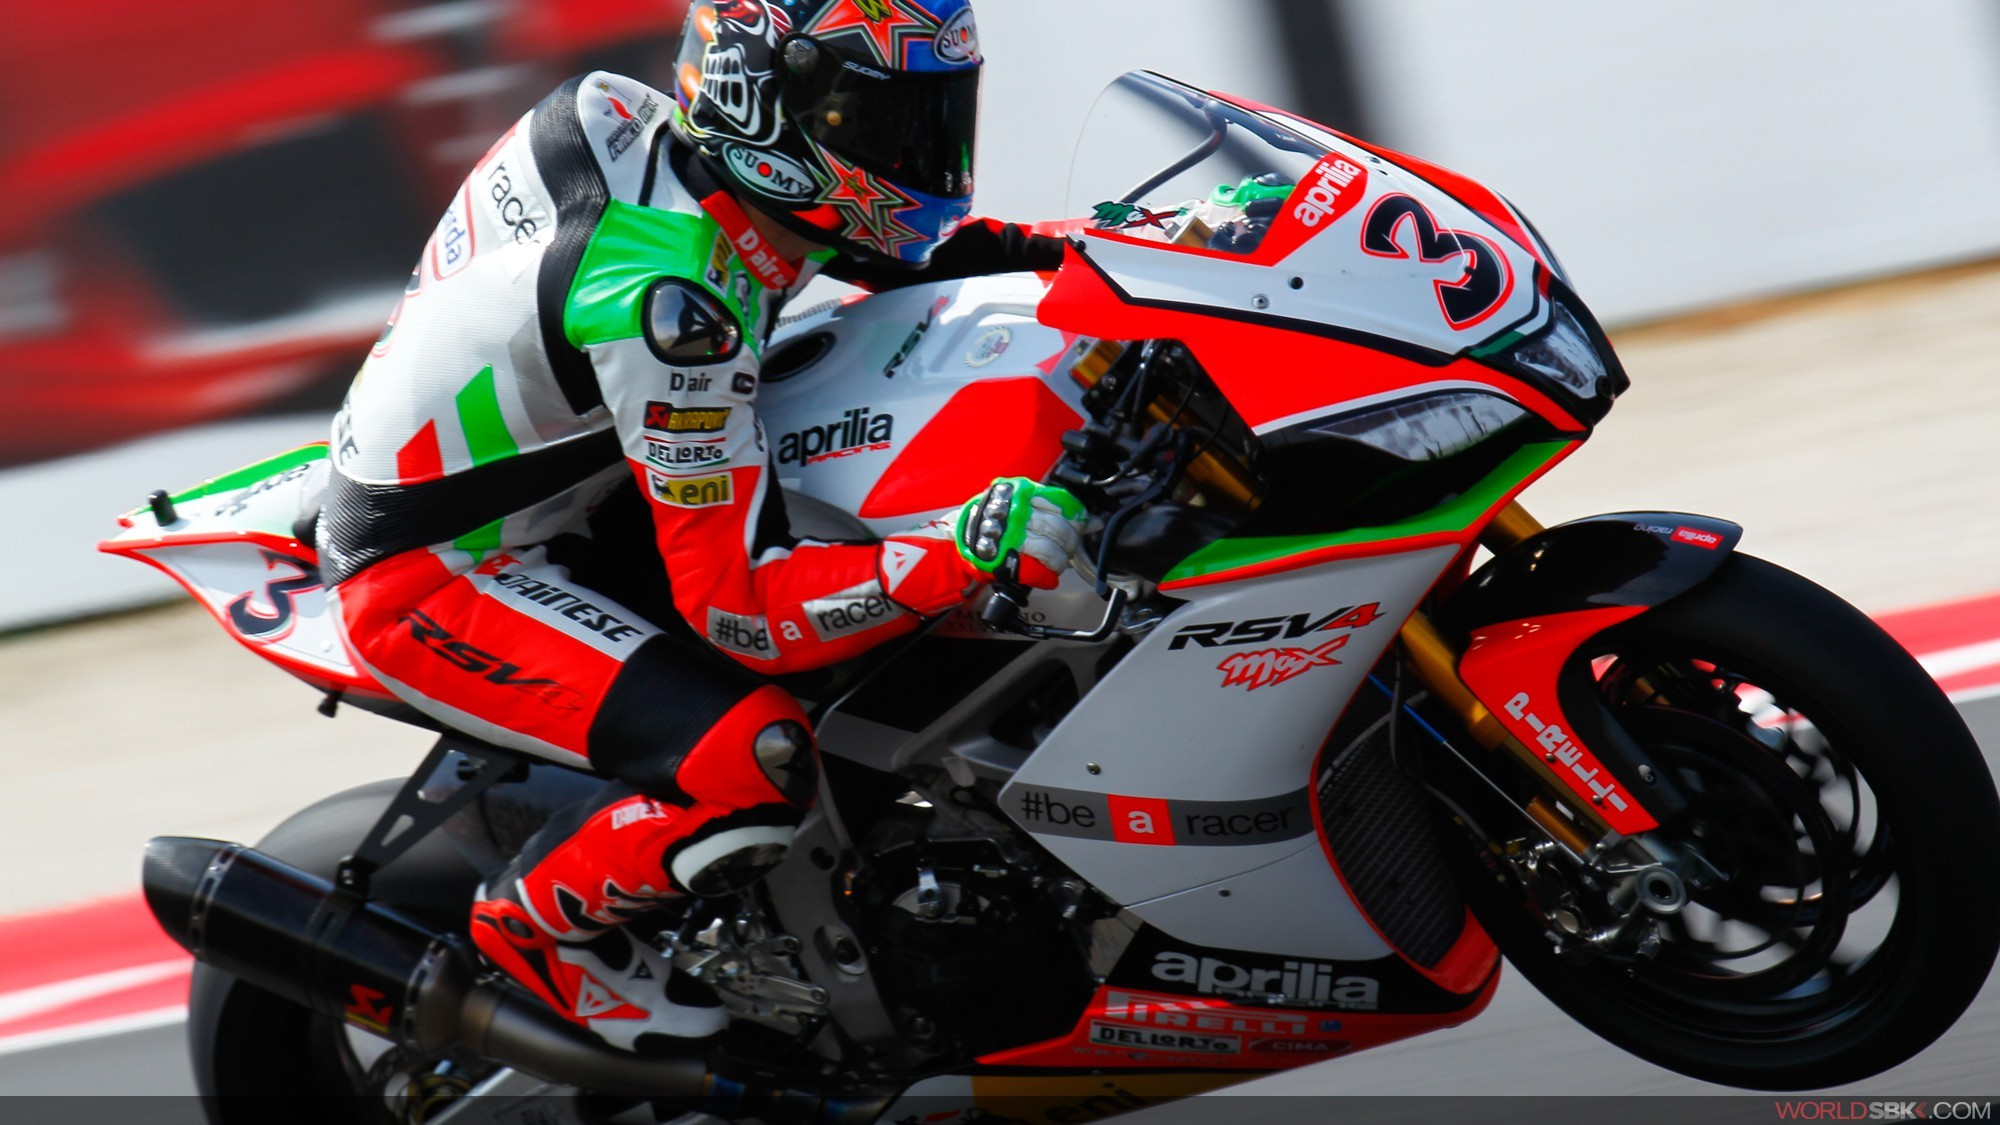 Max biaggi injured in mtb crash uncertain for qatar also under 2015 max biaggi at misano thecheapjerseys